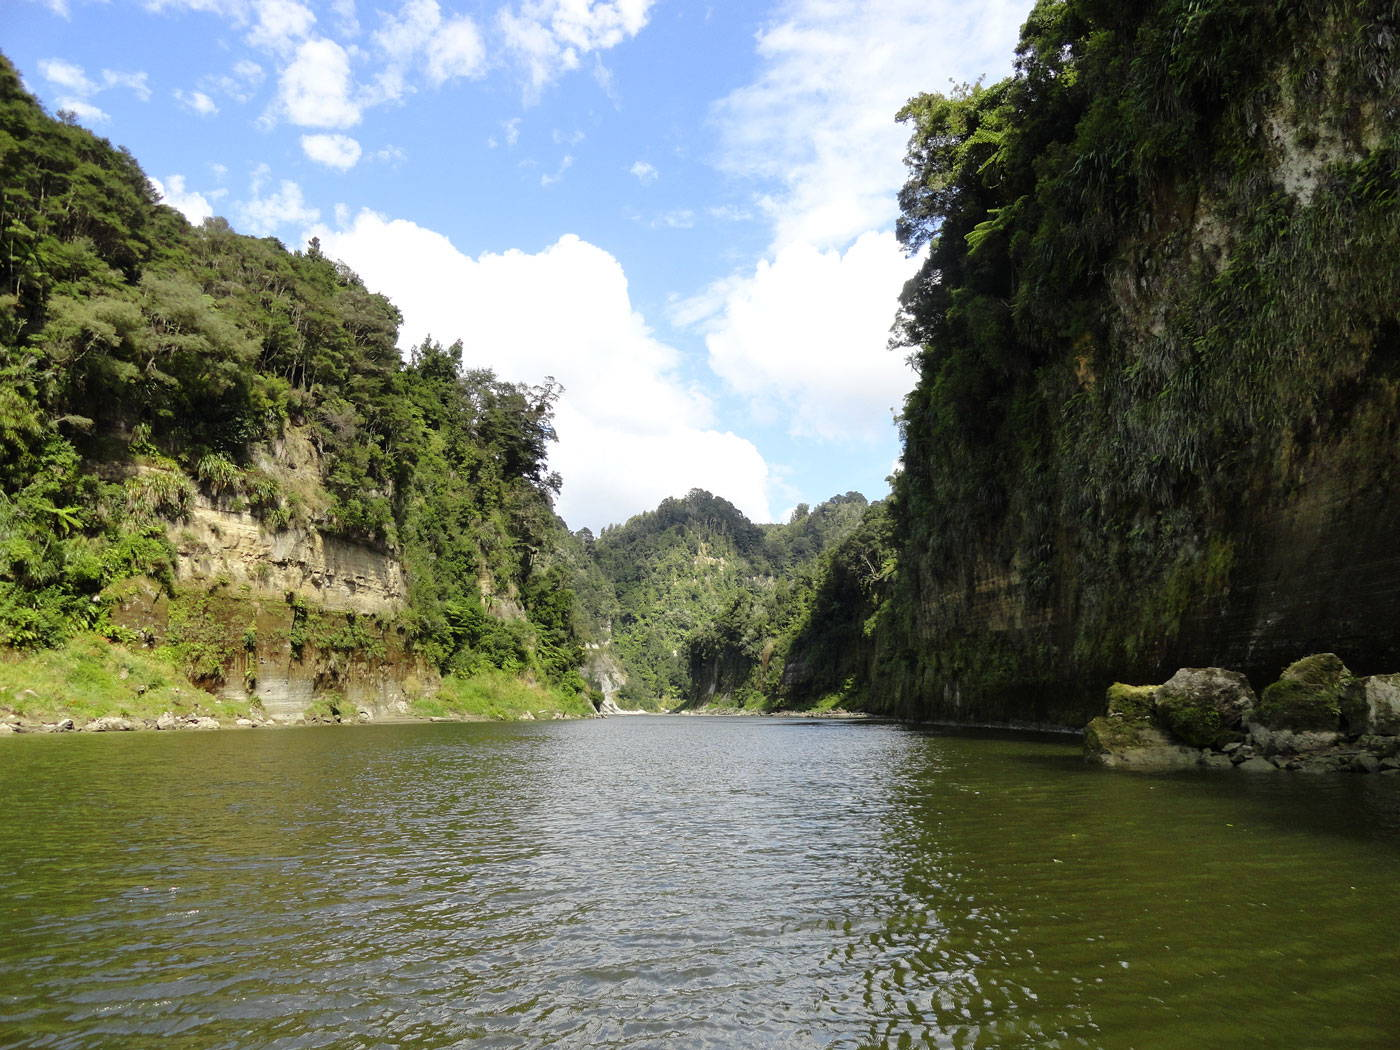 A river with steep banks and a sunny sky